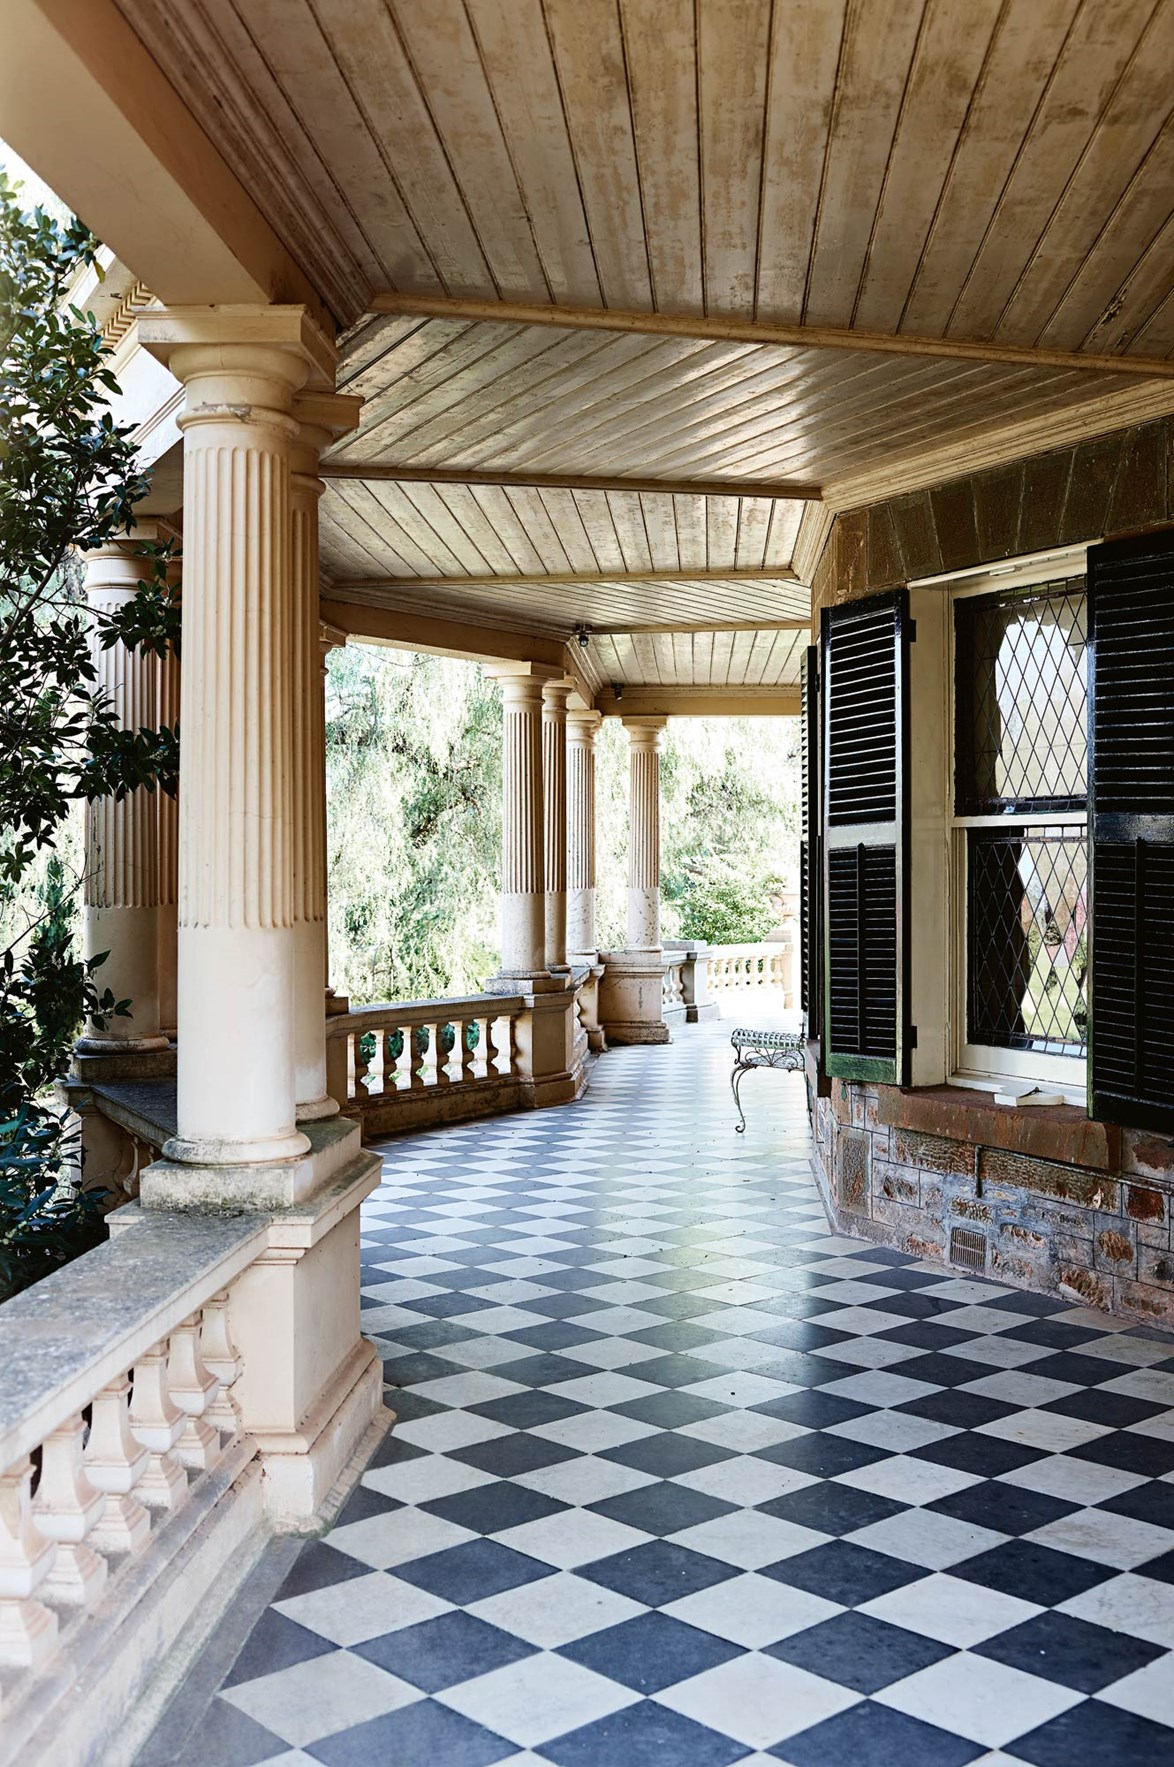 "[Anlaby Station](https://www.homestolove.com.au/one-of-the-oldest-and-grandest-homesteads-in-the-barossa-valley-14038|target=""_blank"") is one of the grandest properties in the Barossa Valley. For four years, its owners spent their weekends flying from Sydney to South Australia to meticulously restore the property. Although most of the restoration is complete, the owners continue to find ways to make the property more sustainable and eco-friendly."